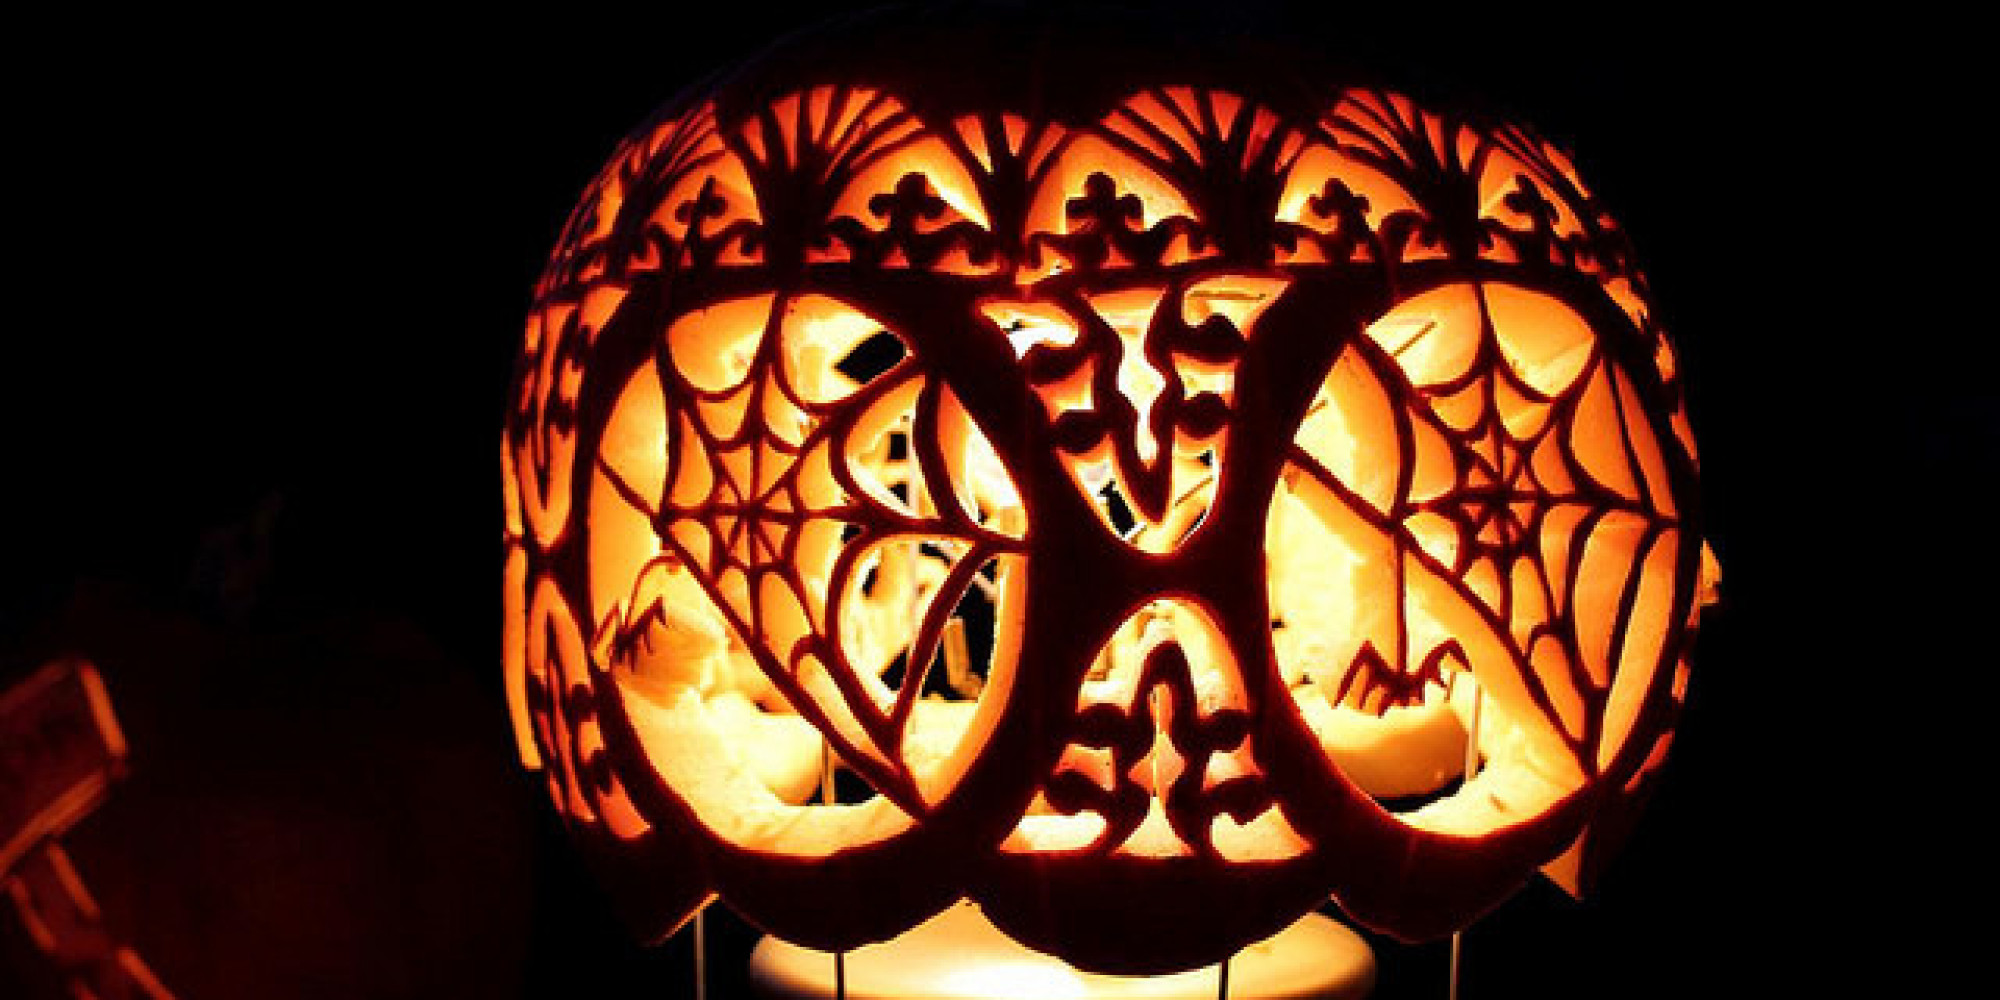 Girly Pumpkin Carving Patterns. With Girly Pumpkin Carving Patterns ...